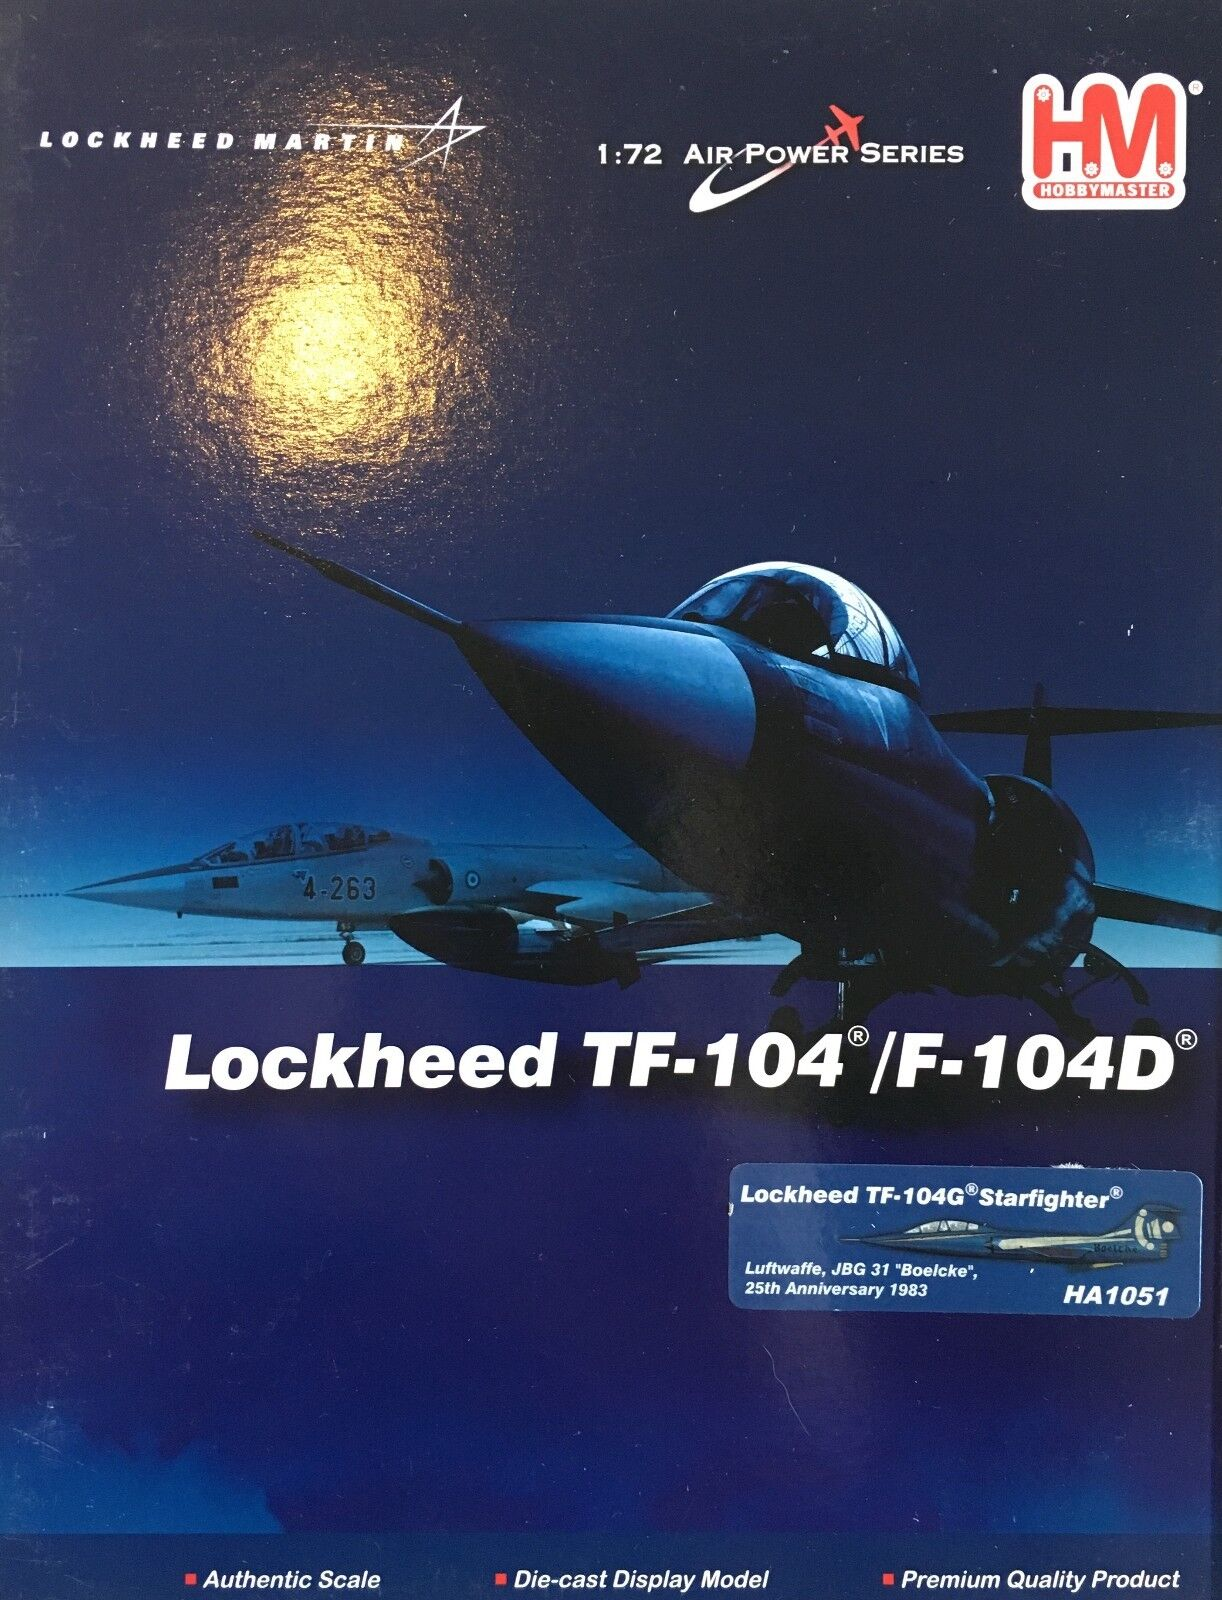 Hobby Master 1 72 HA1051 TF-104G Starfighter Luftwaffe la JBG 31 'Boelcke' 25th Ann